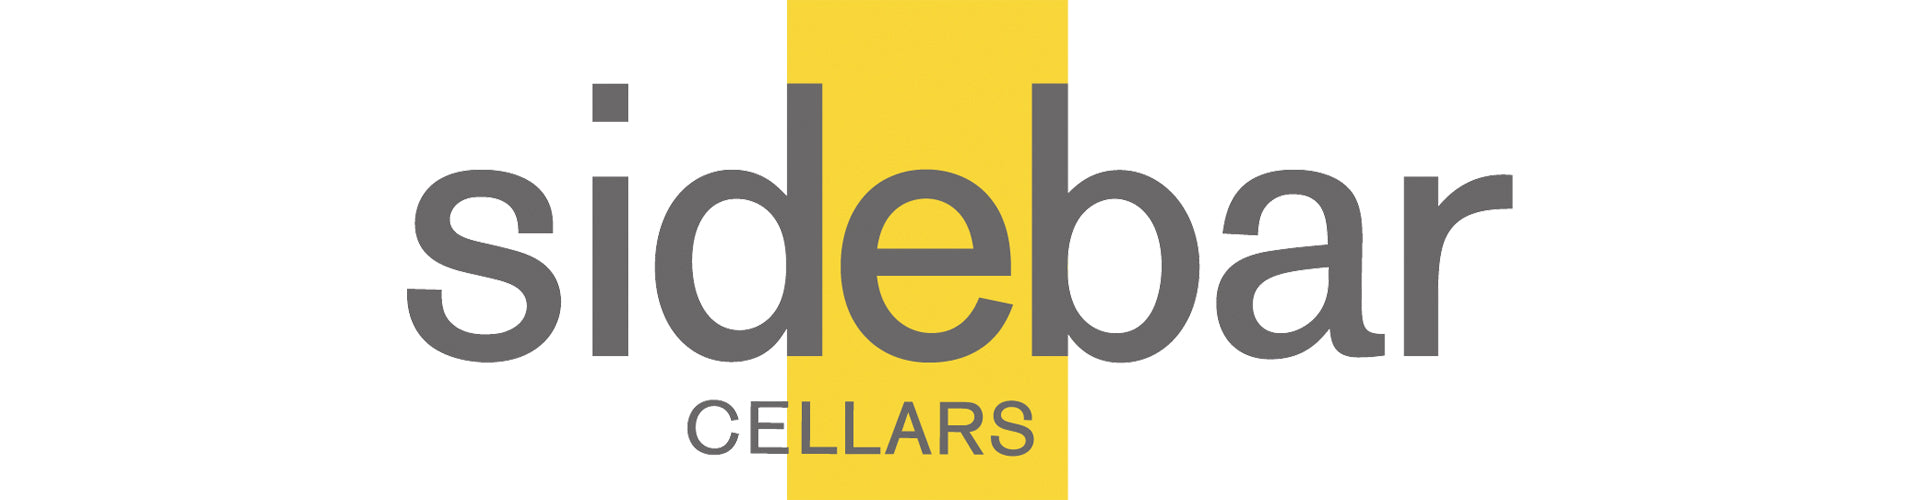 Sidebar Cellars By David Ramey Wine Logo